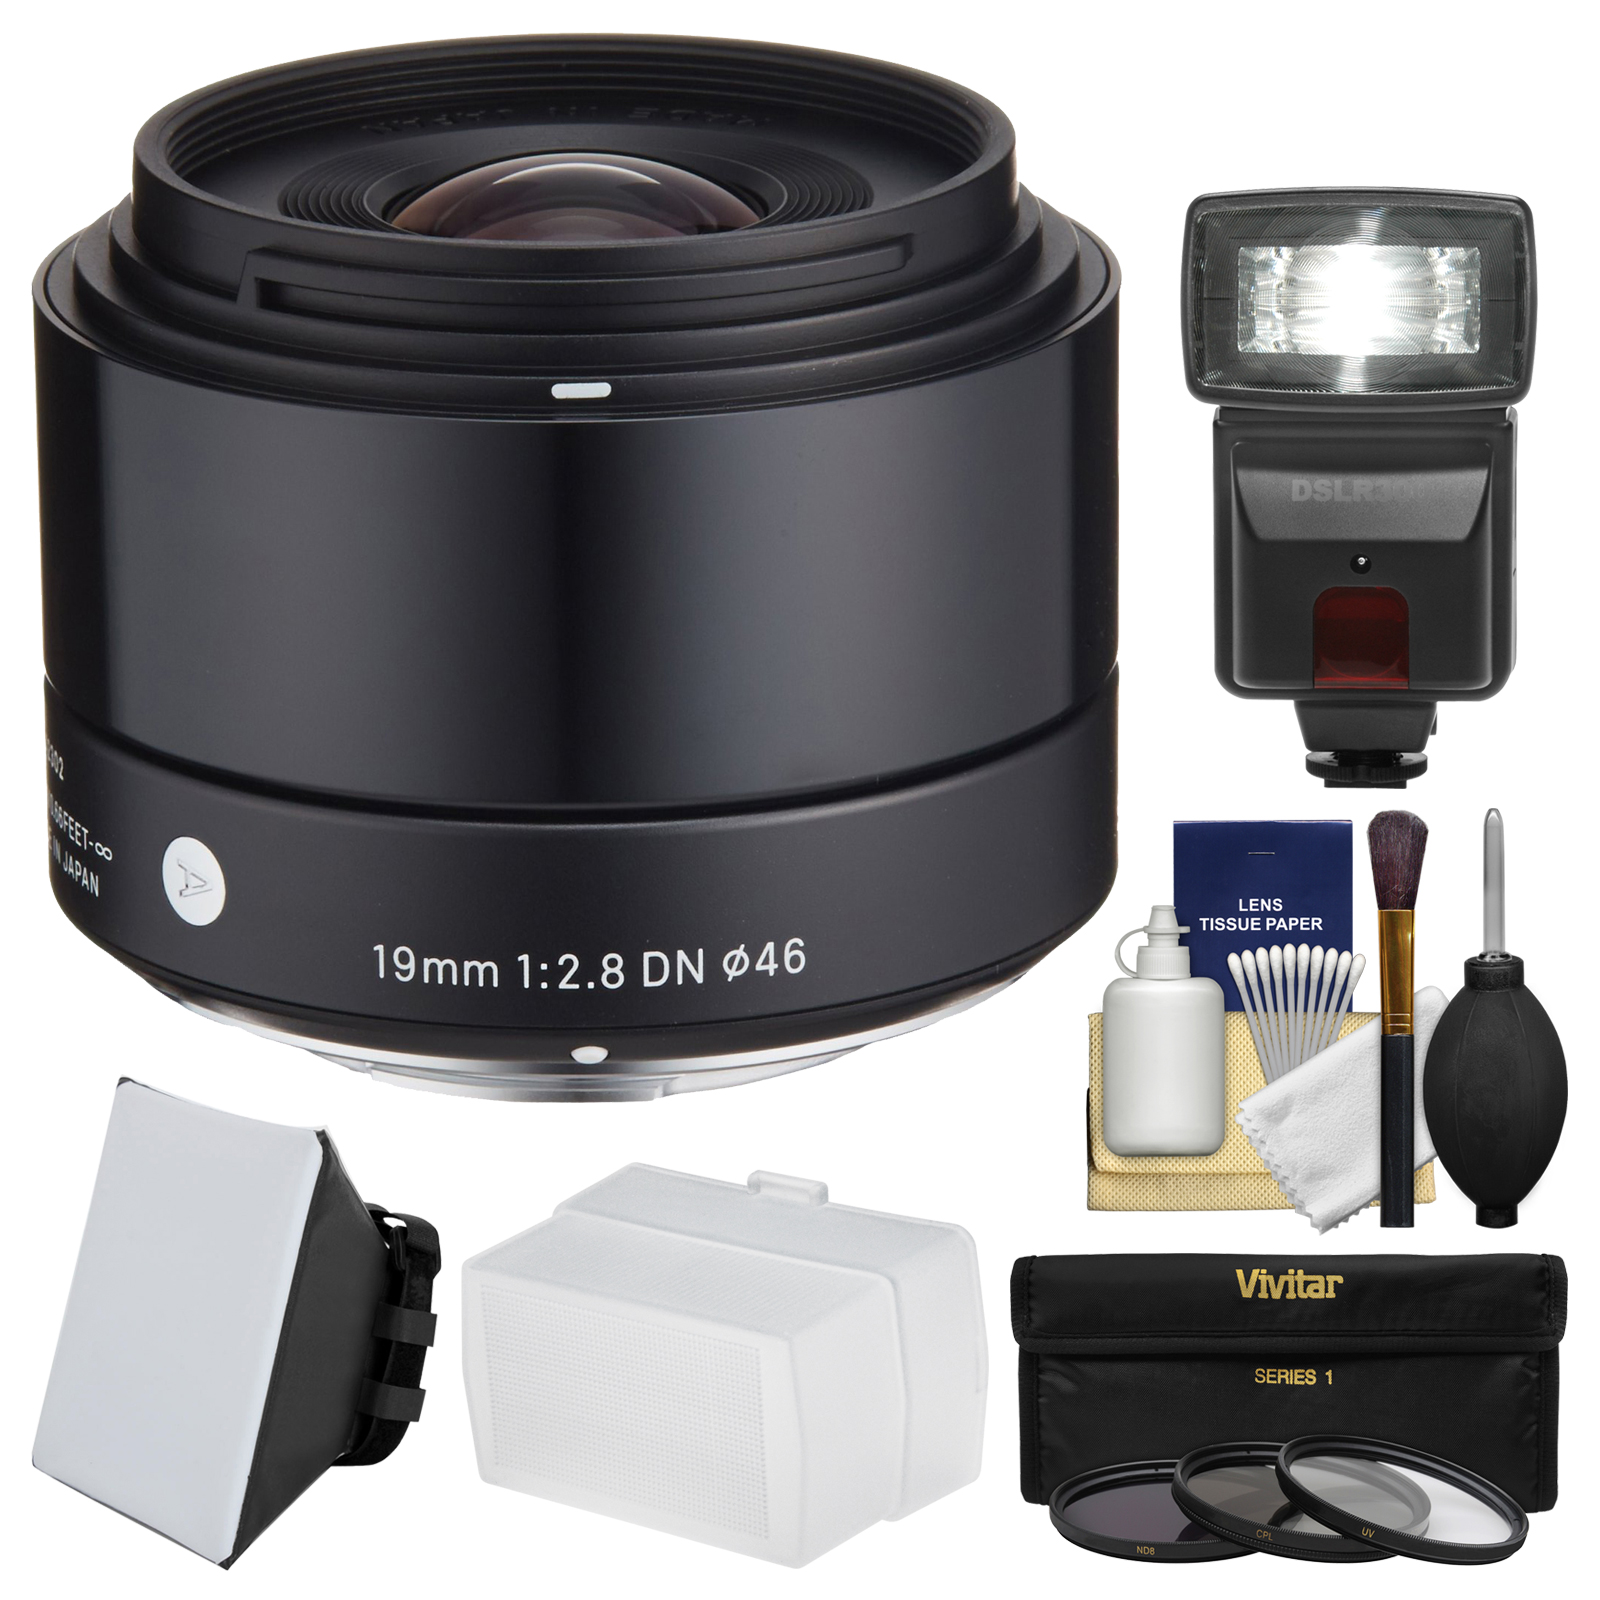 Sigma 19mm f/2.8 EX DN Art Lens with 3 UV/CPL/ND8 Filters + Flash + Diffuser + Soft Box + Kit for Olympus / Panasonic Micro 4/3 Digital Cameras